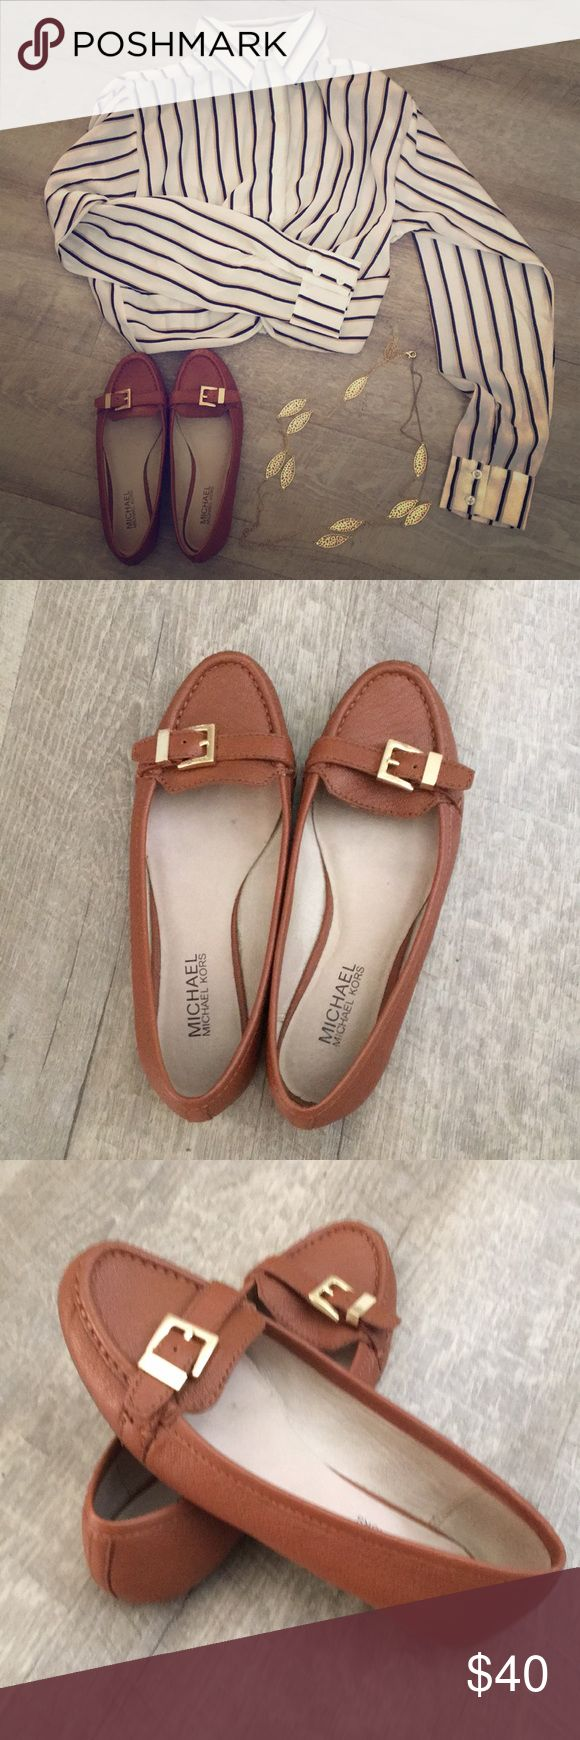 Michael Khors flats Previously loved, excellent condition. Real leather buckle flats. Brown leather with glove tan leather insole. Gold buckles. MICHAEL Michael Kors Shoes Flats & Loafers